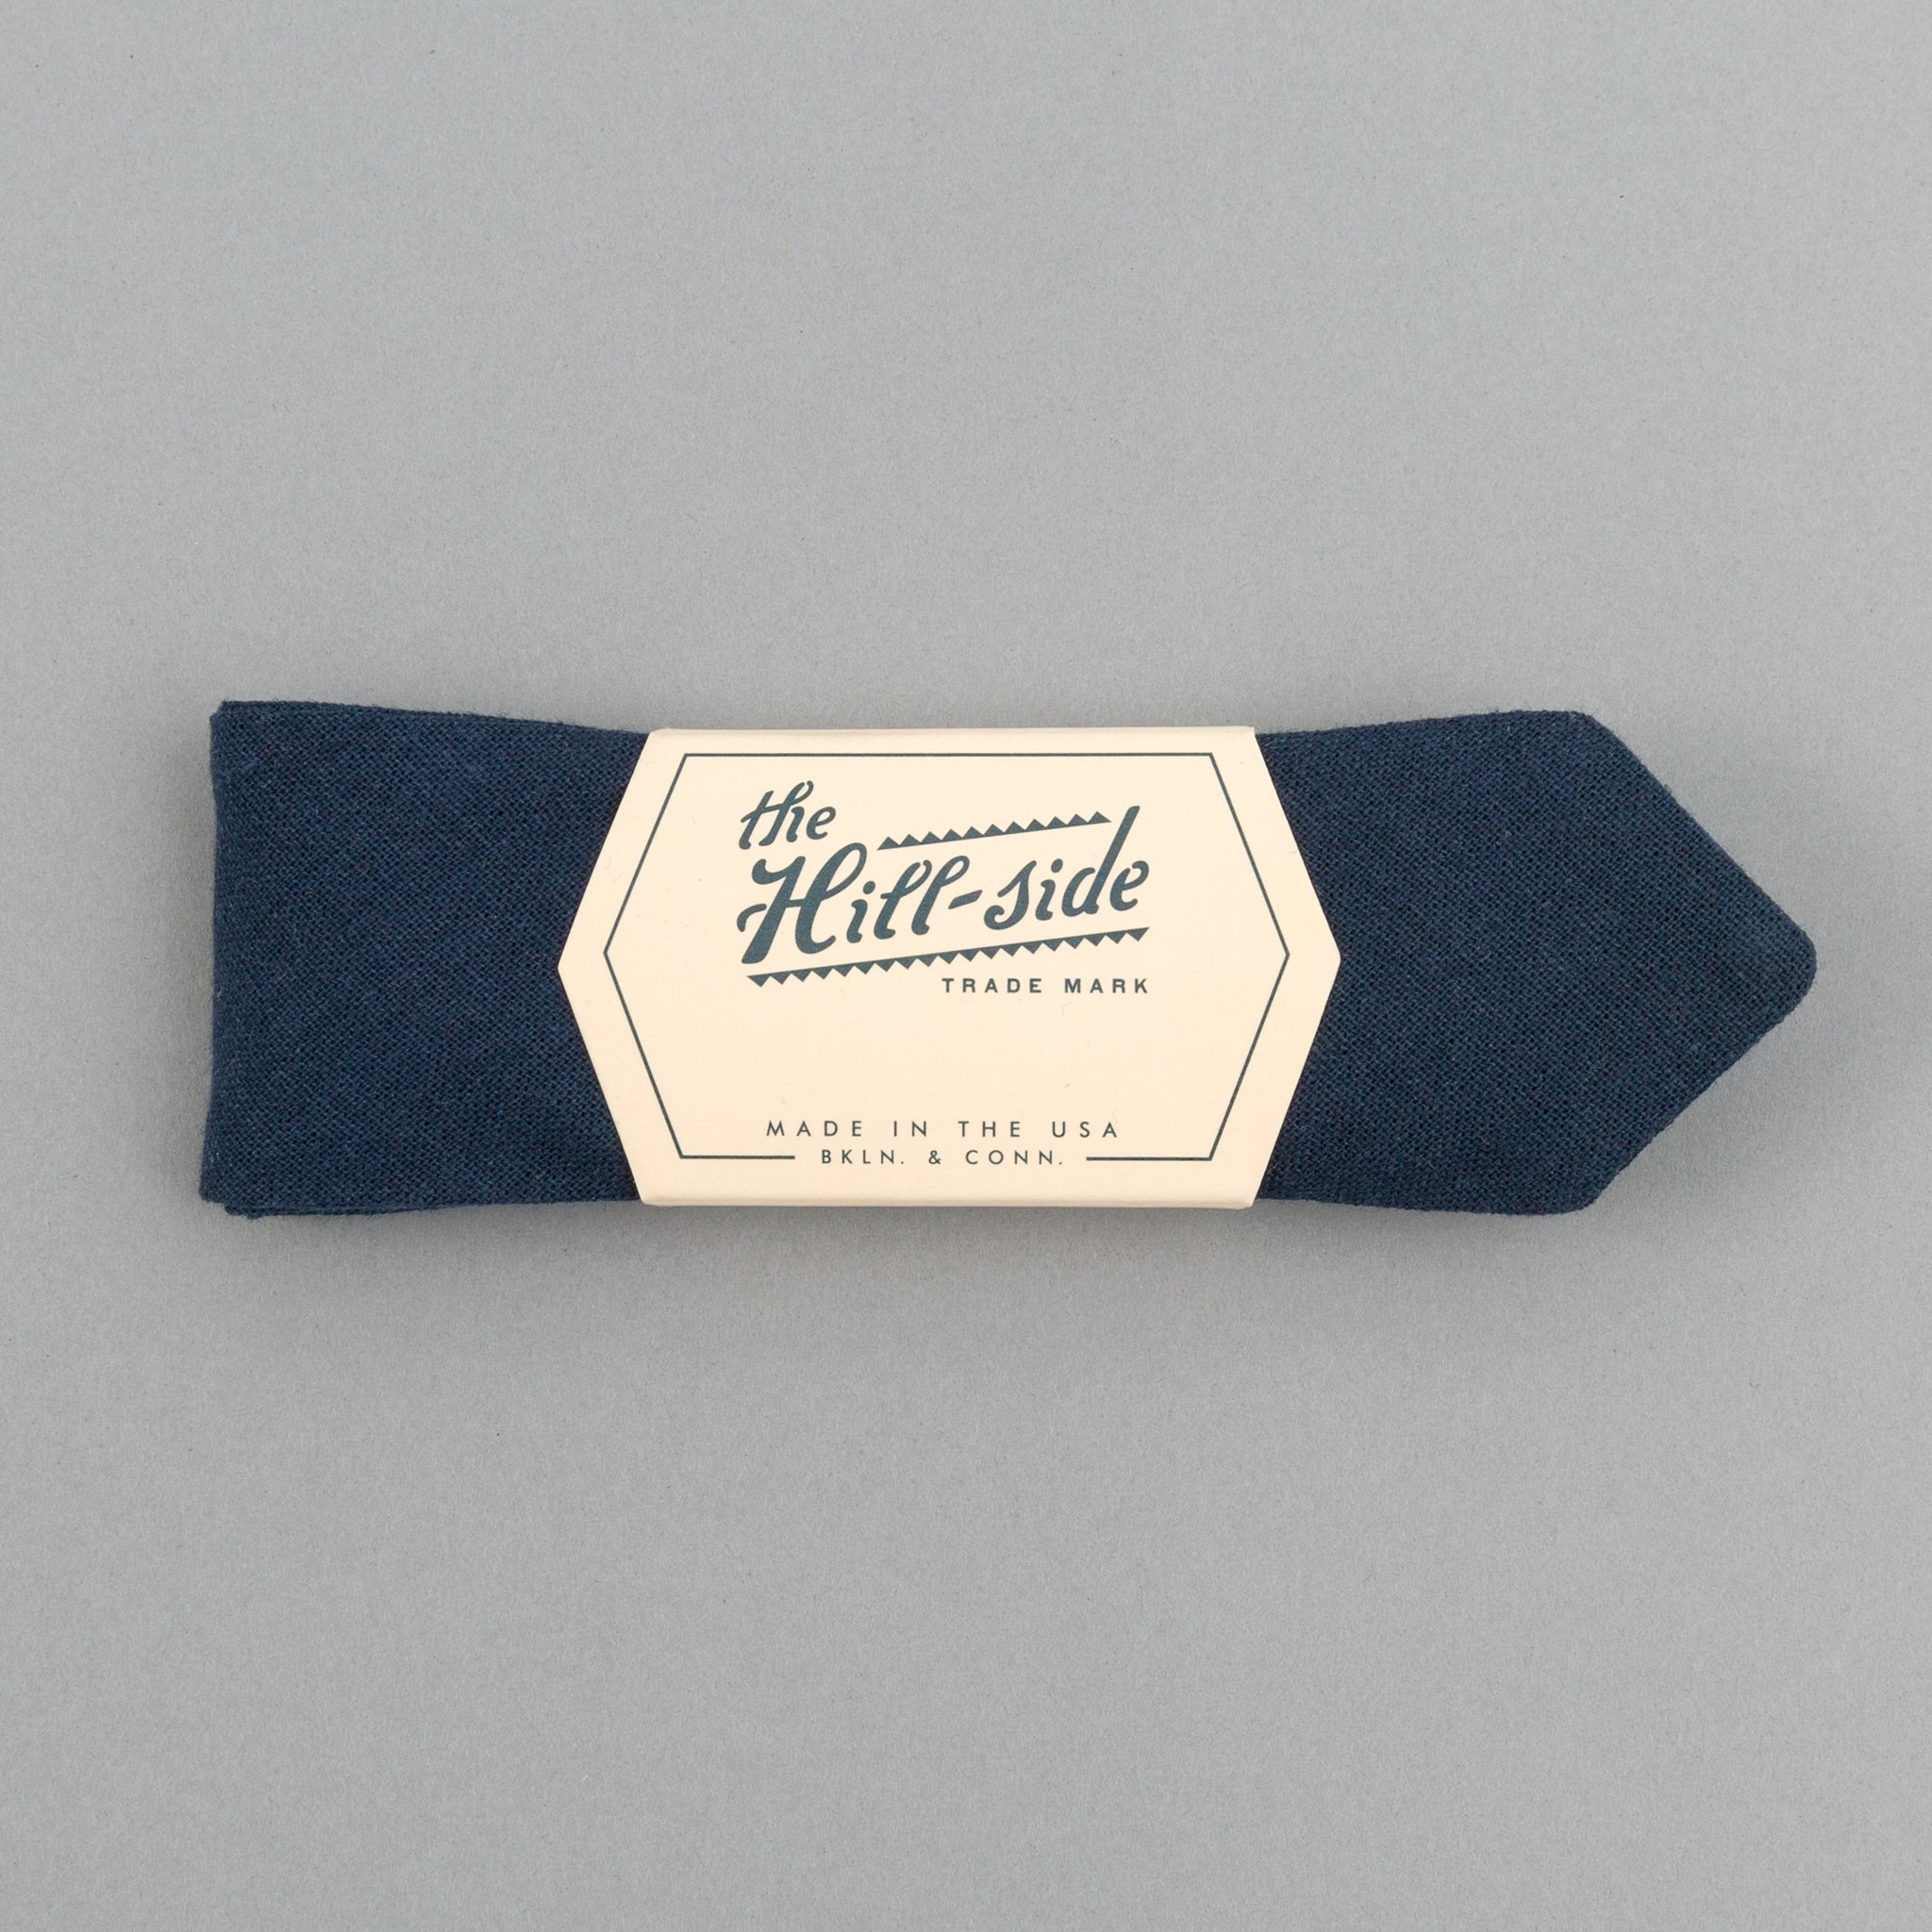 The Hill-Side - Linen / Cotton Oxford Bow Tie, Navy - BT1-418 - image 1